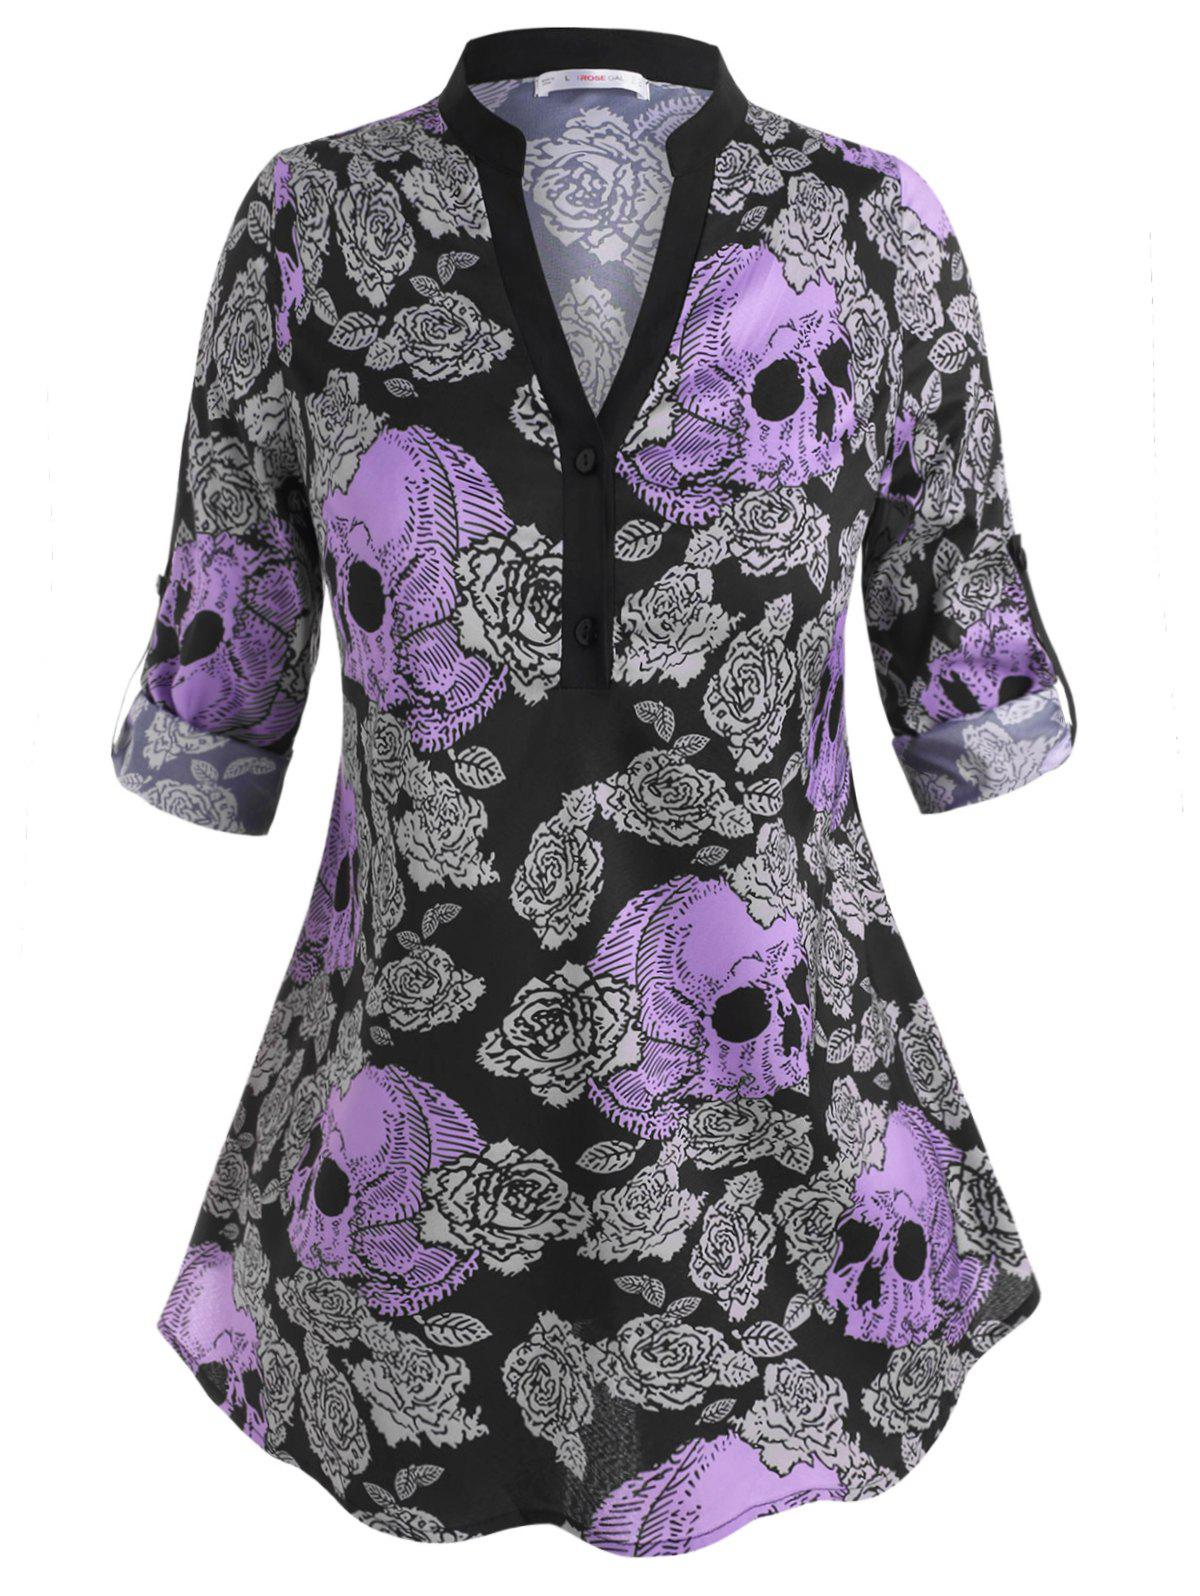 Latest Skull Floral Tab Sleeve Halloween Plus Size Blouse